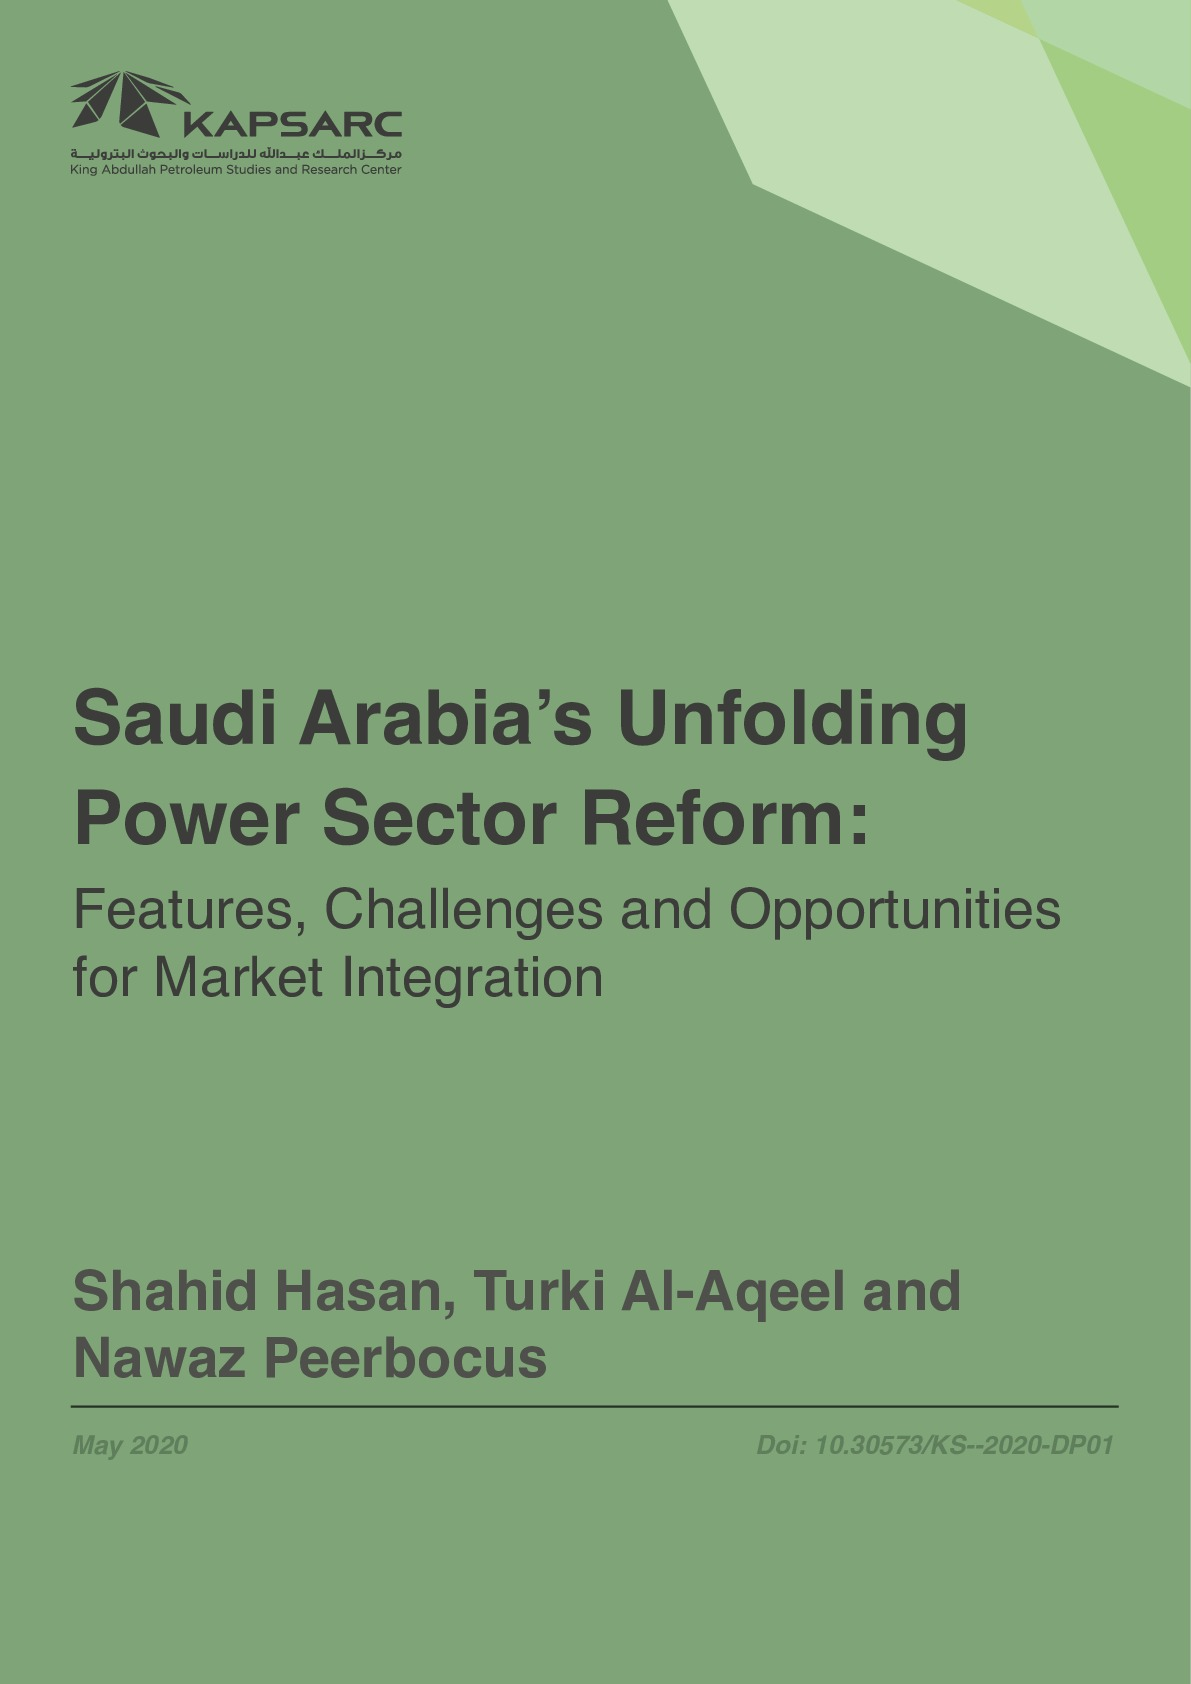 Saudi Arabia's Unfolding Power Sector Reform: Features, Challenges and Opportunities for Market Integration